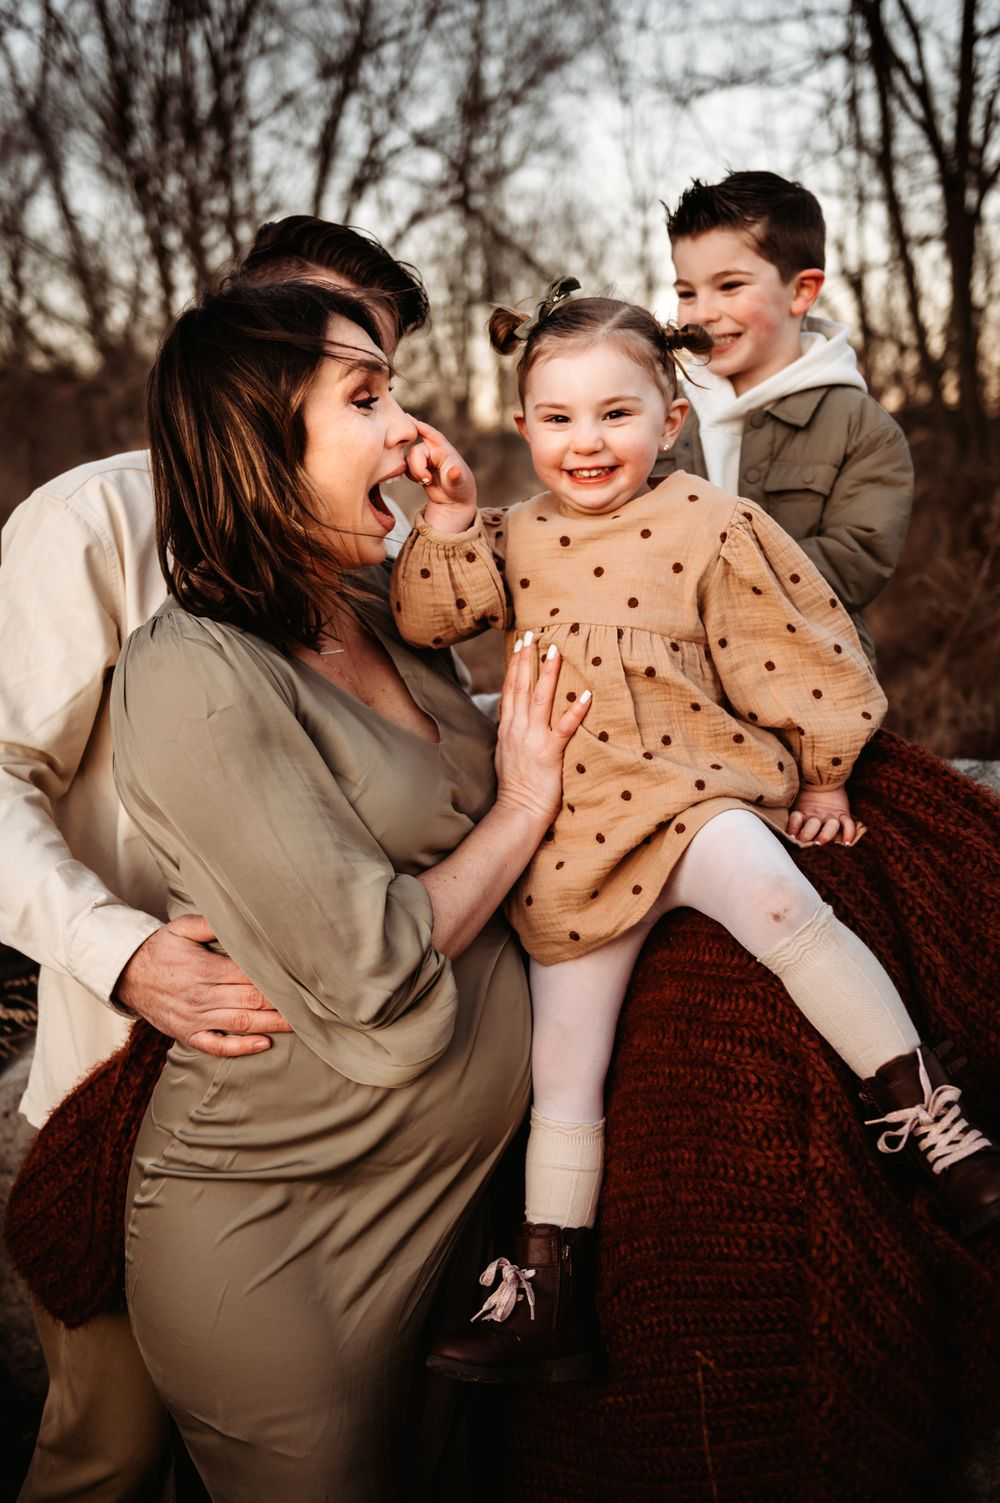 Sussex county nj family session